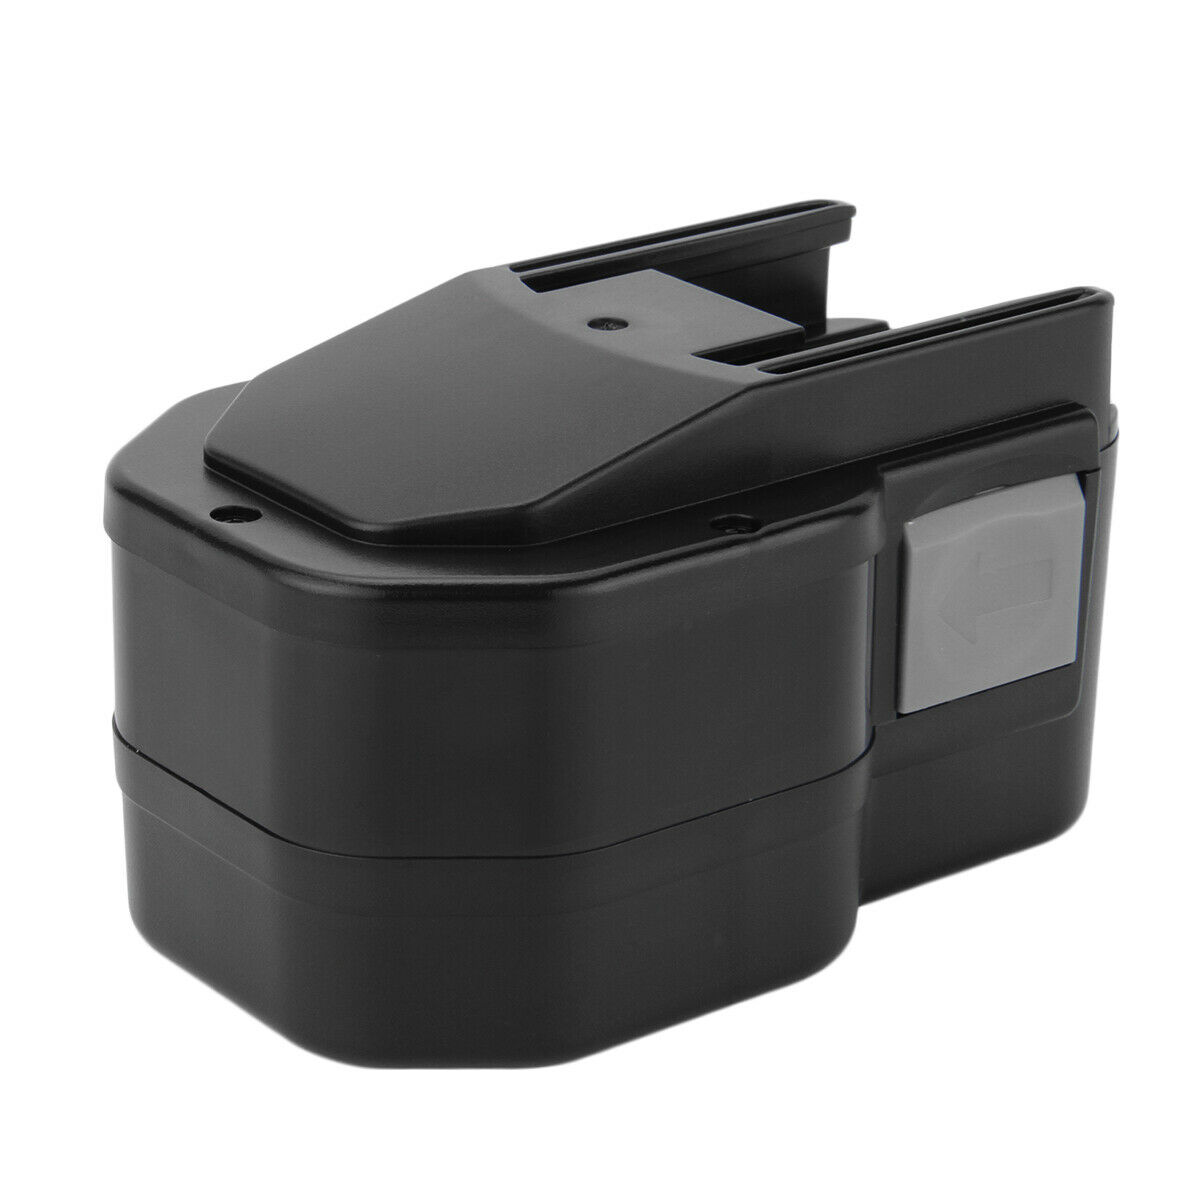 MILWAUKEE 0511-21 0512-21 0512-25 0513-21 0513-20 0514-20 14,4V compatible Battery